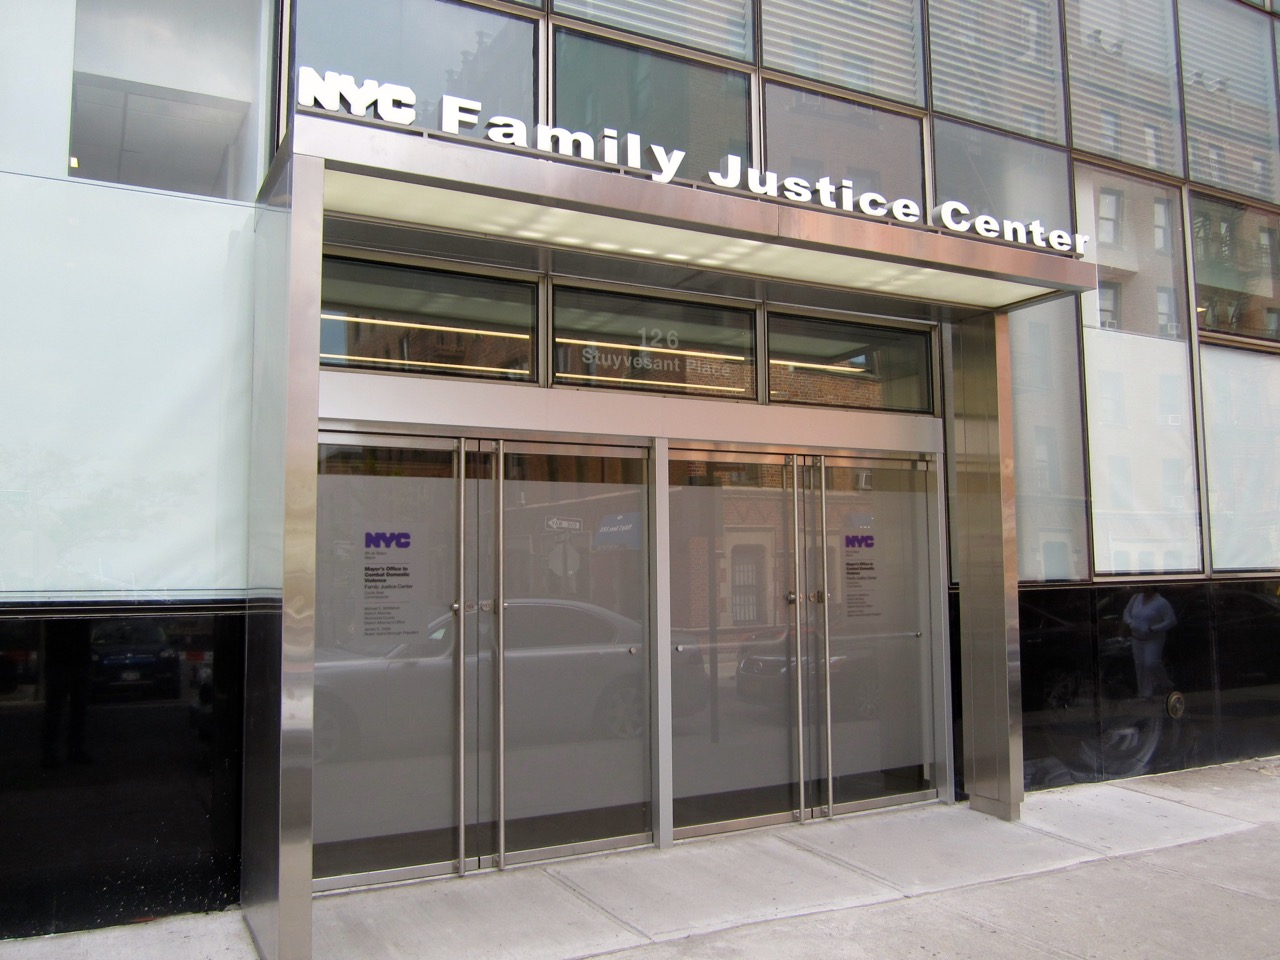 Family Justice Center  Staten Island, Ny  Impact. Retail Promotional Calendar P E T Insurance. Health Framework For California Public Schools. Cass Business School Reputation. What Is A Domain Worth Iron Butterfly Options. Chiropractor Virginia Beach Va. Security Company Atlanta Us Air Force Lodging. Metrics Dashboard Software Go To My Contacts. Bank Of America Create Checking Account Online